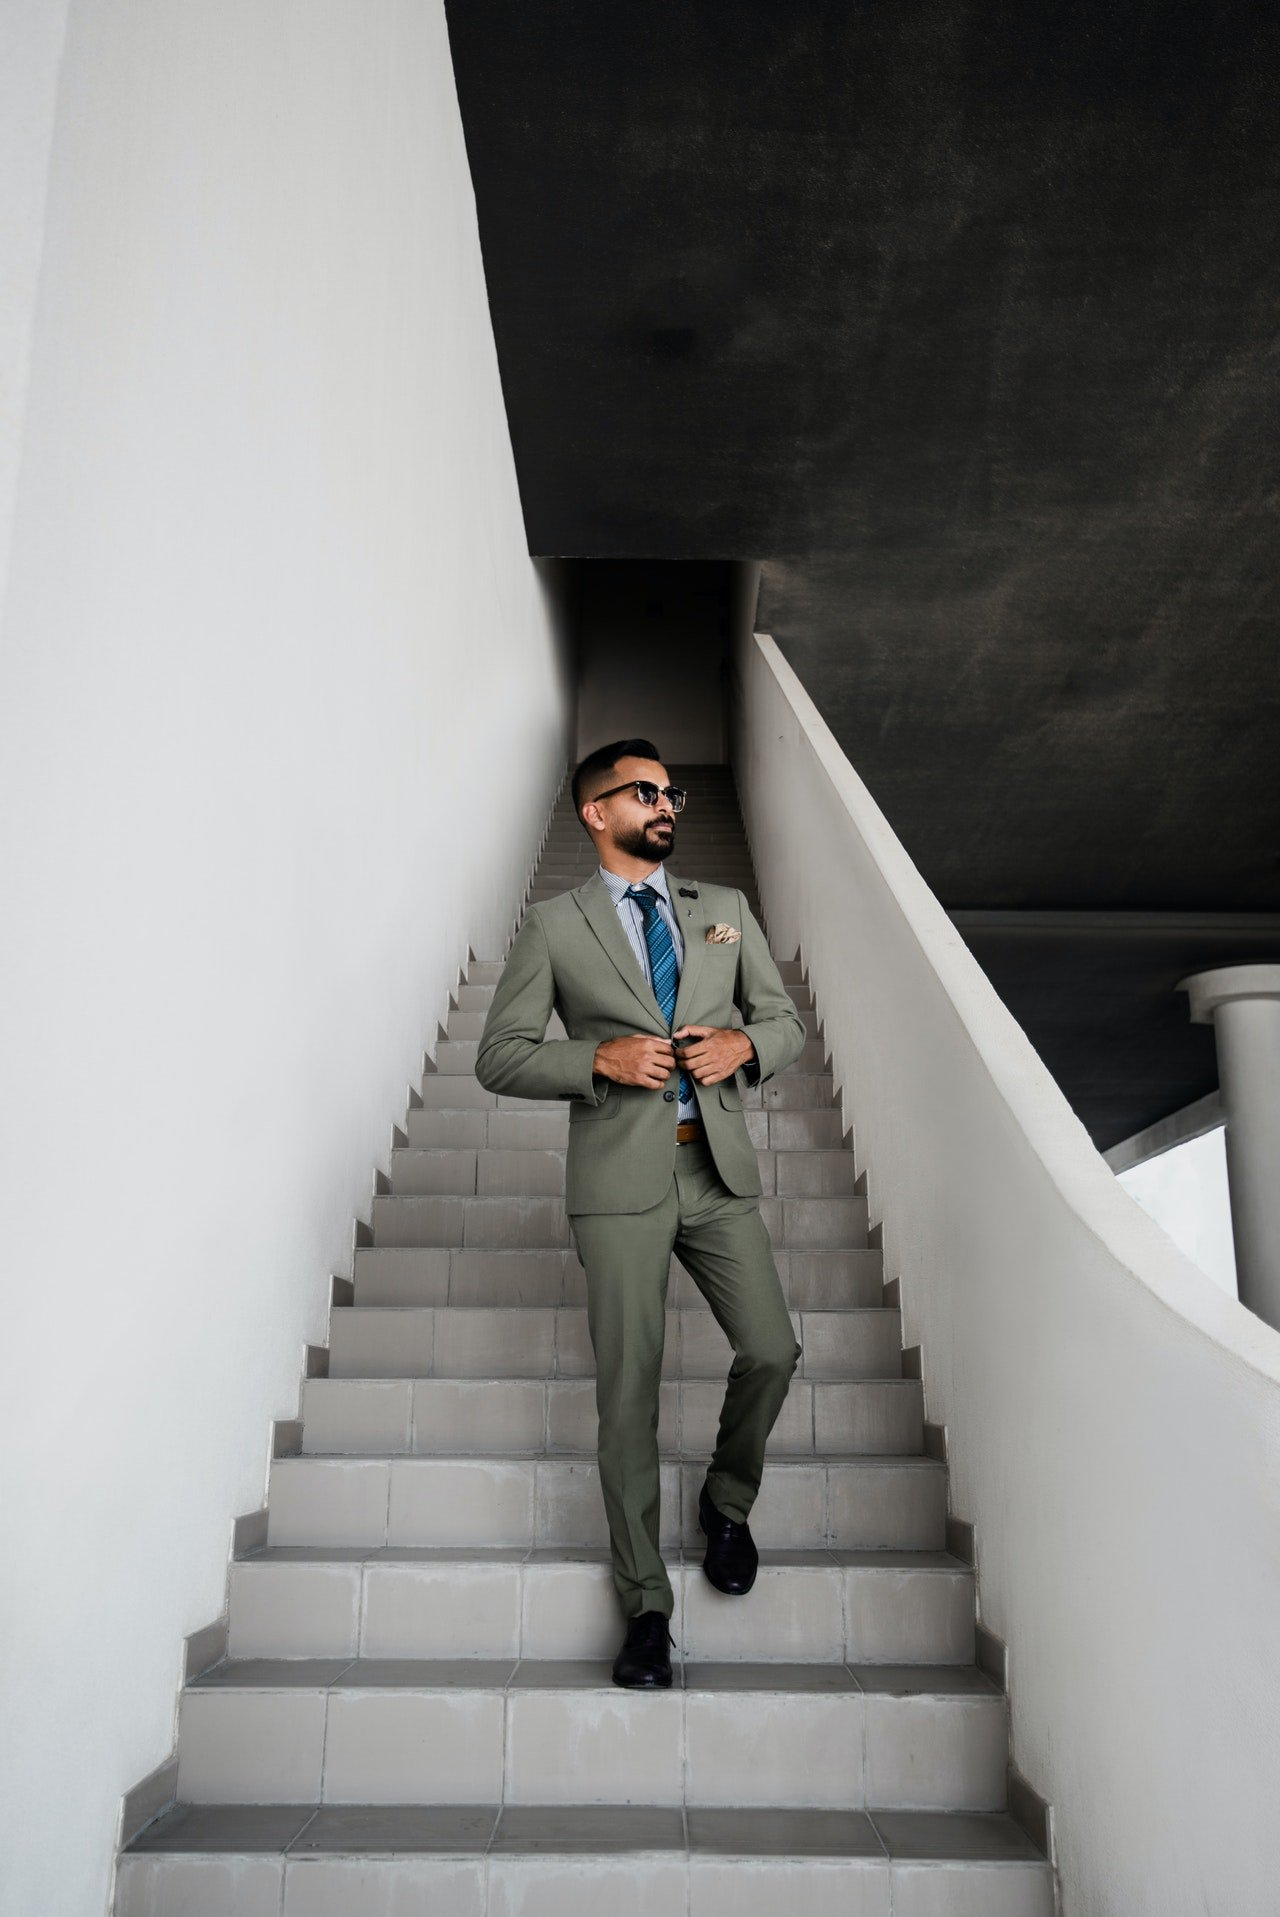 A man in grey suit standing on a stair | Photo: Pexels